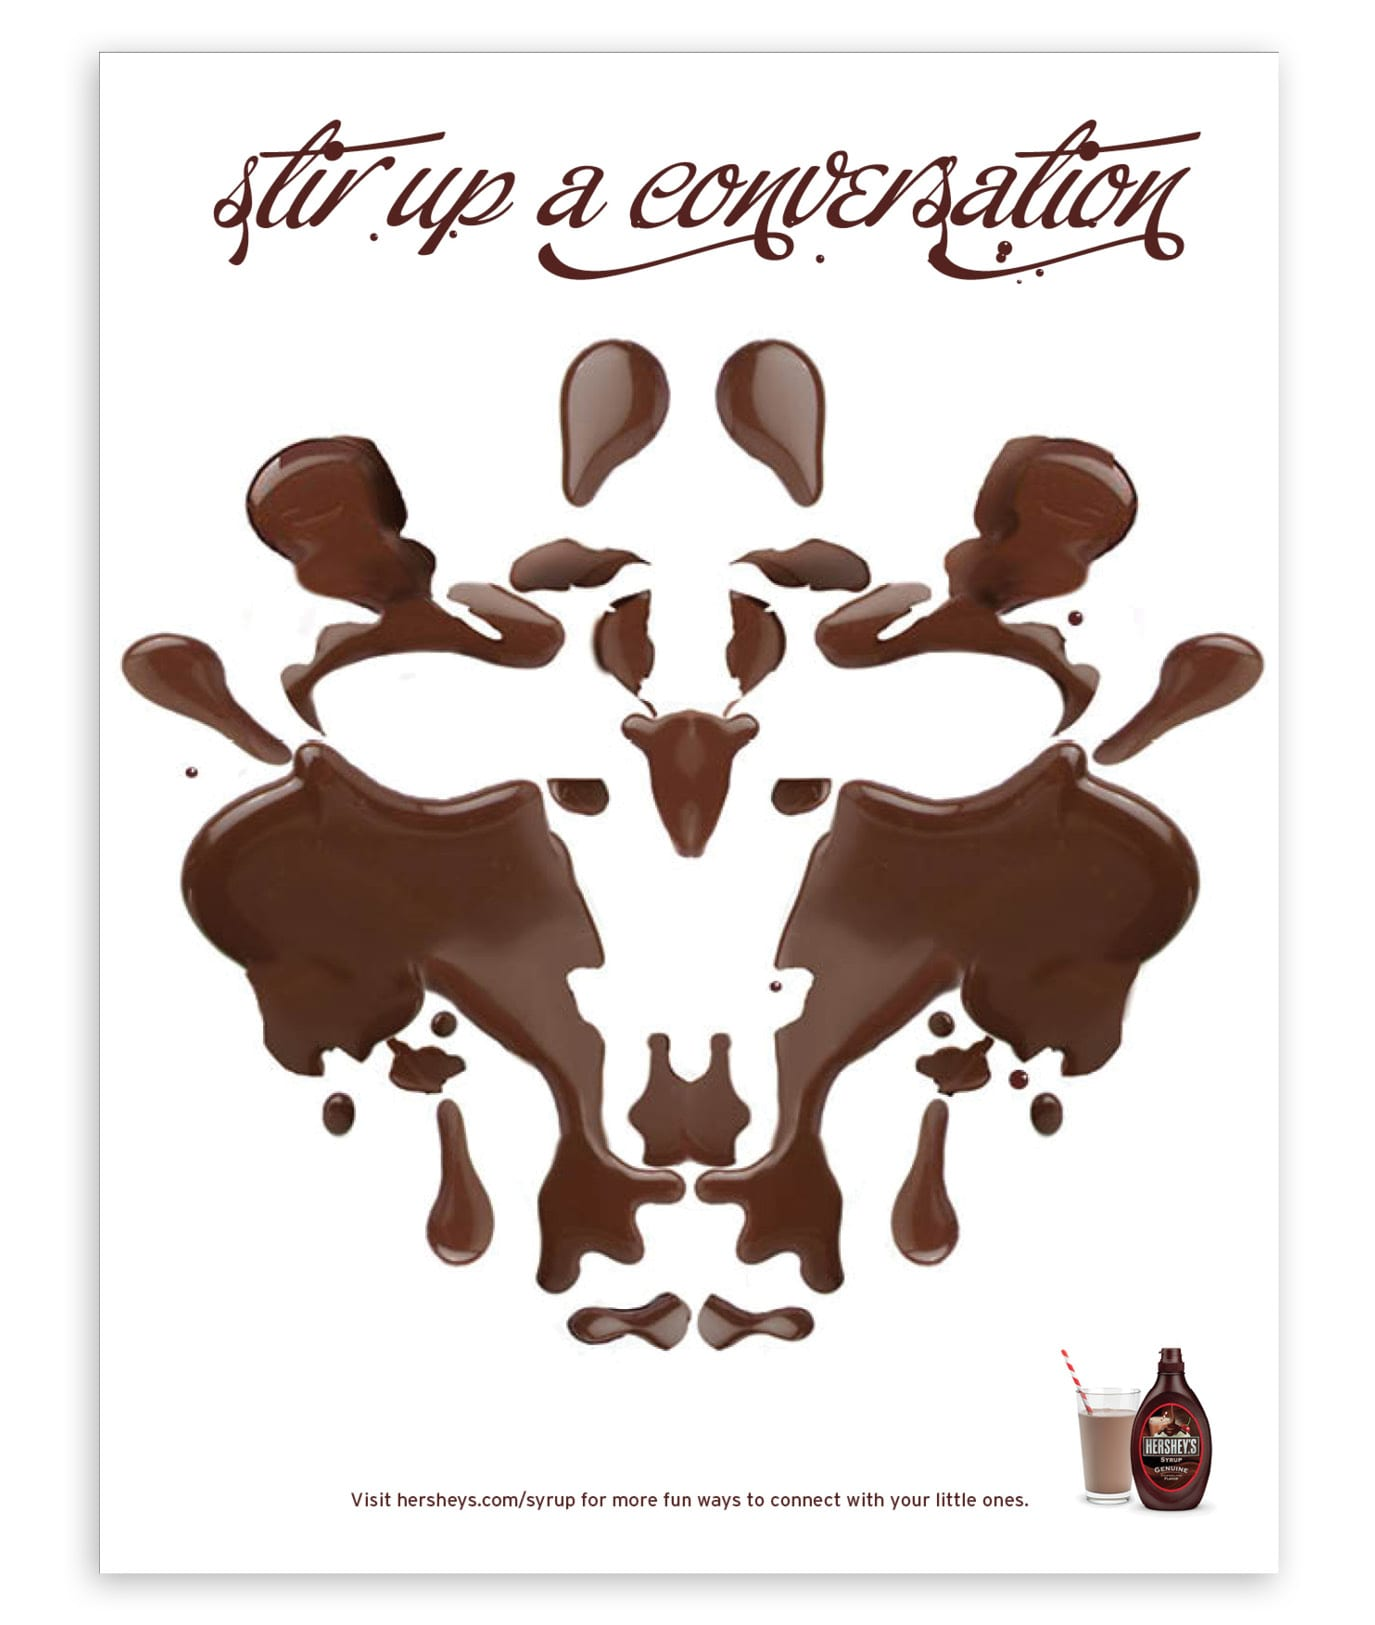 Hershey's Syrup // Stir Up A Conversation